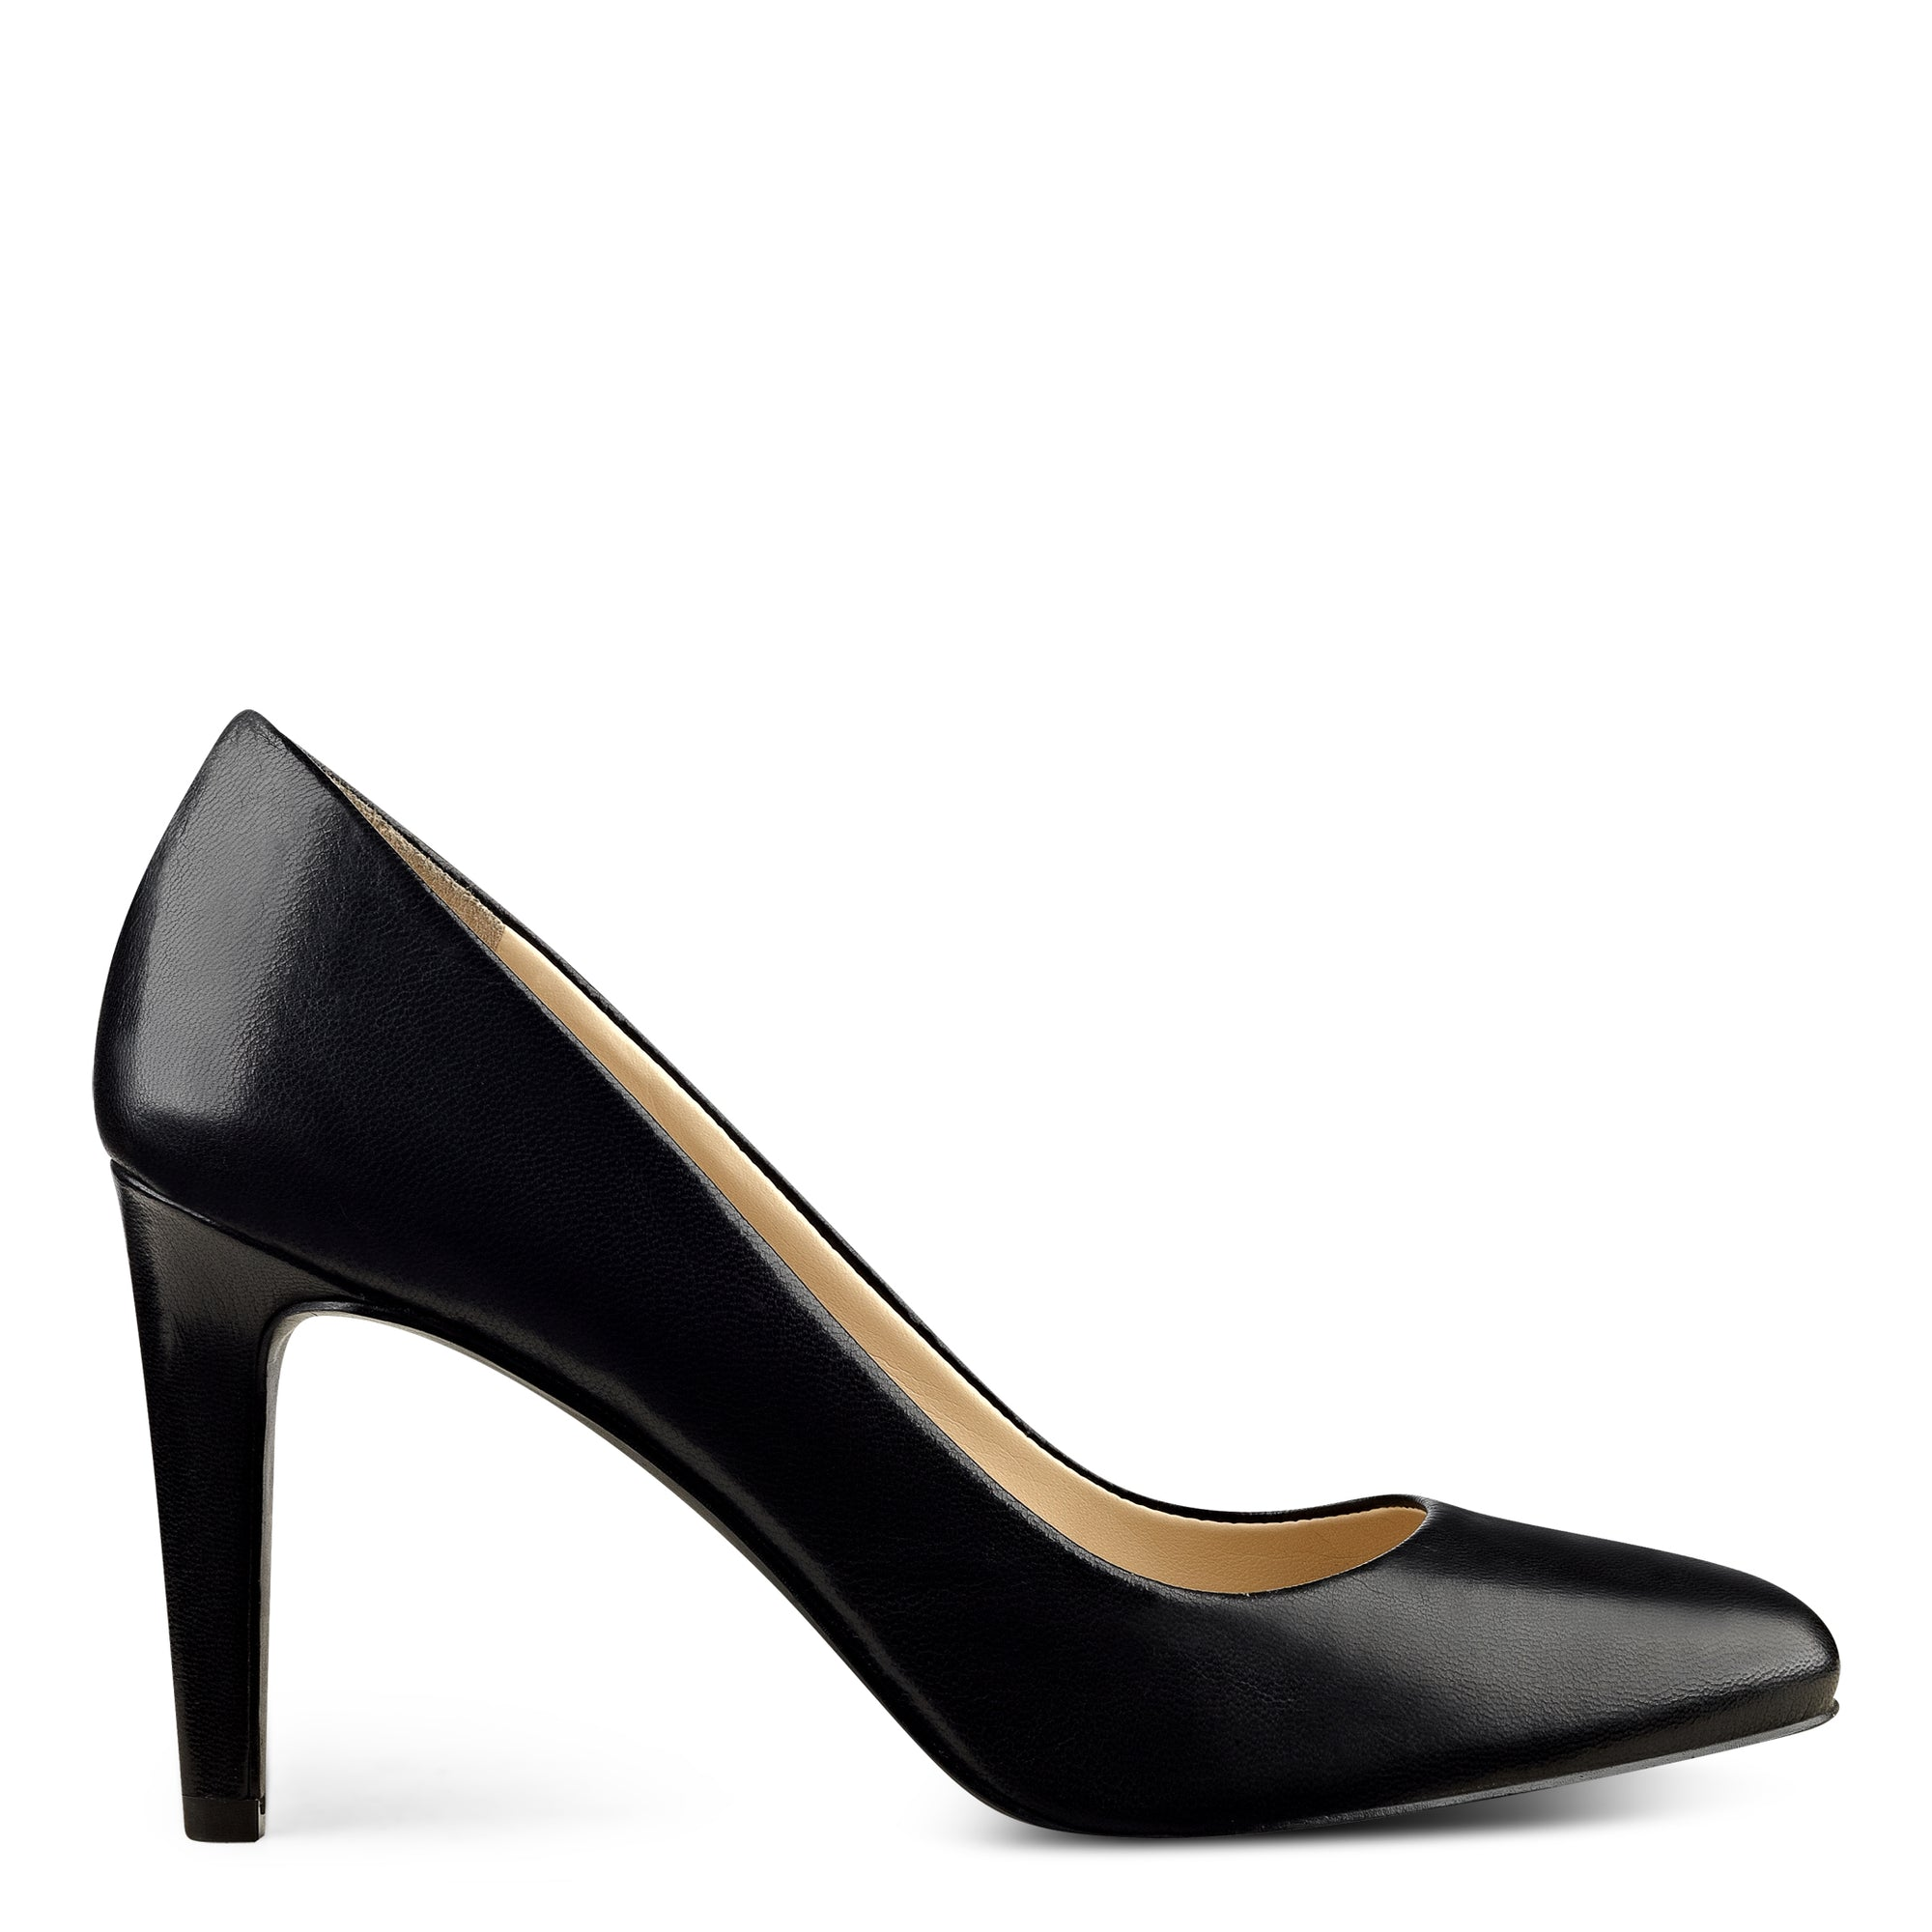 Handjive Round Toe Pumps